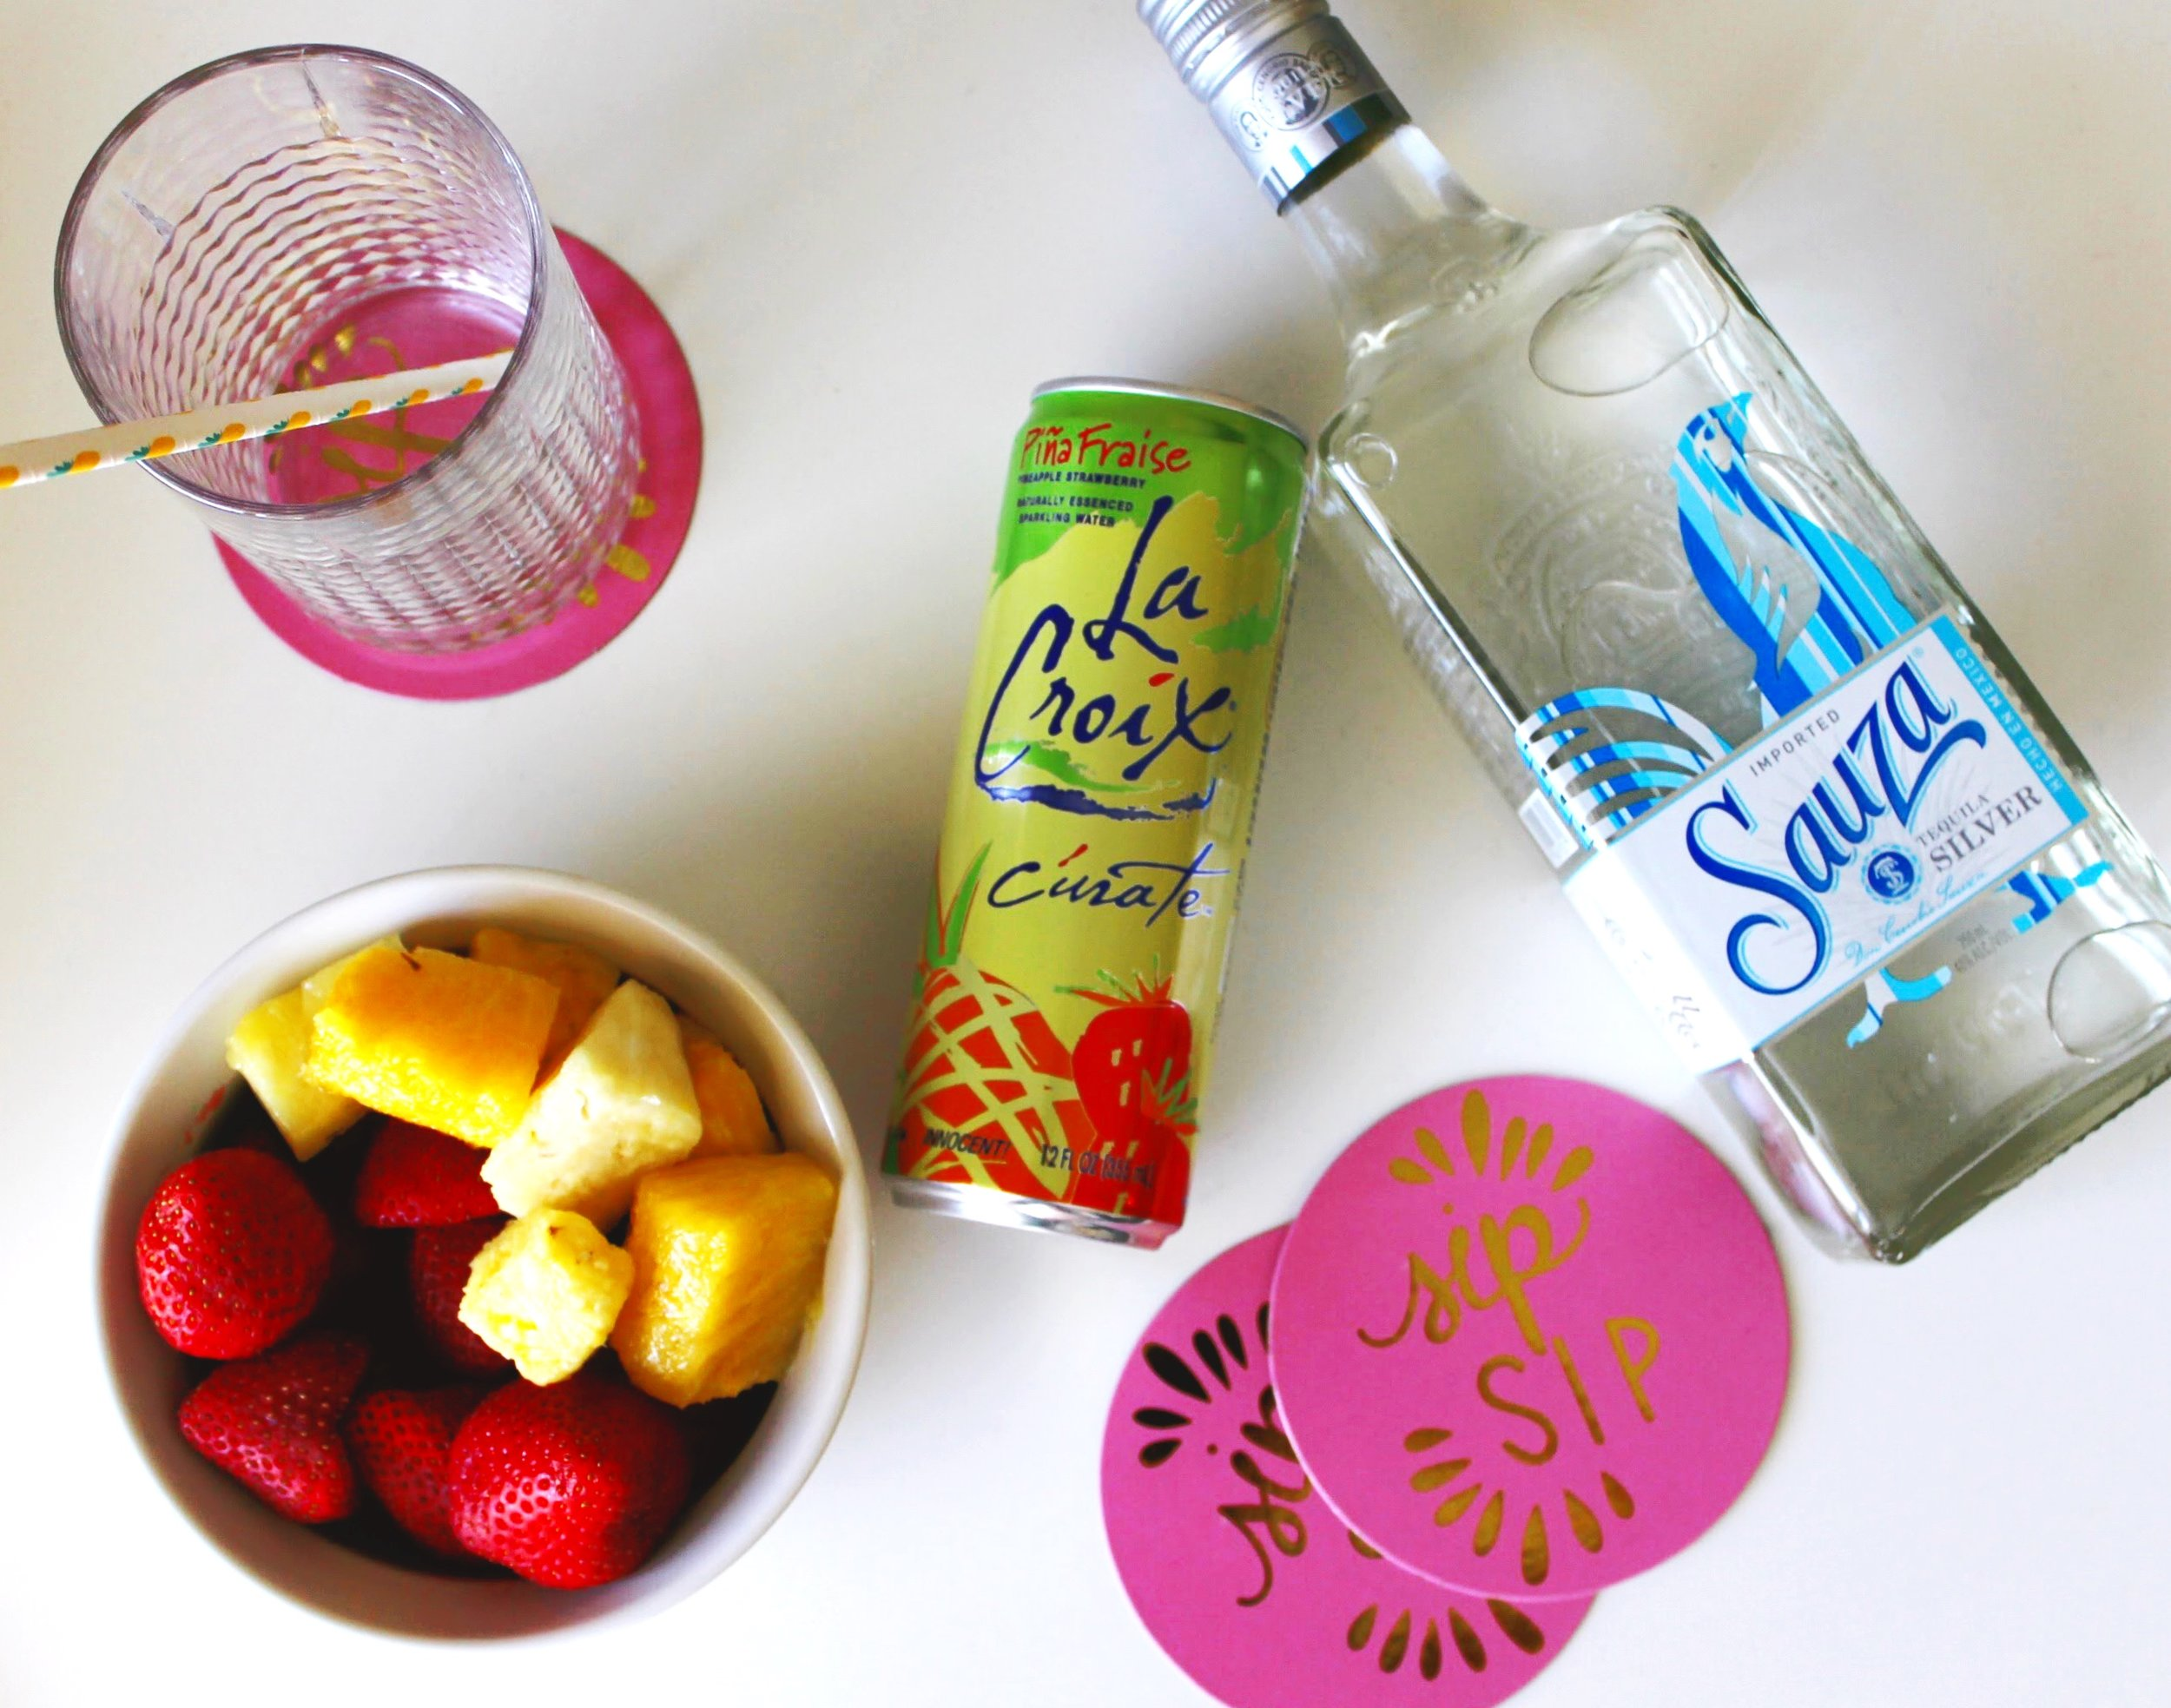 LaCroix Sparkling Water Cocktail Garnished with Fresh Fruit